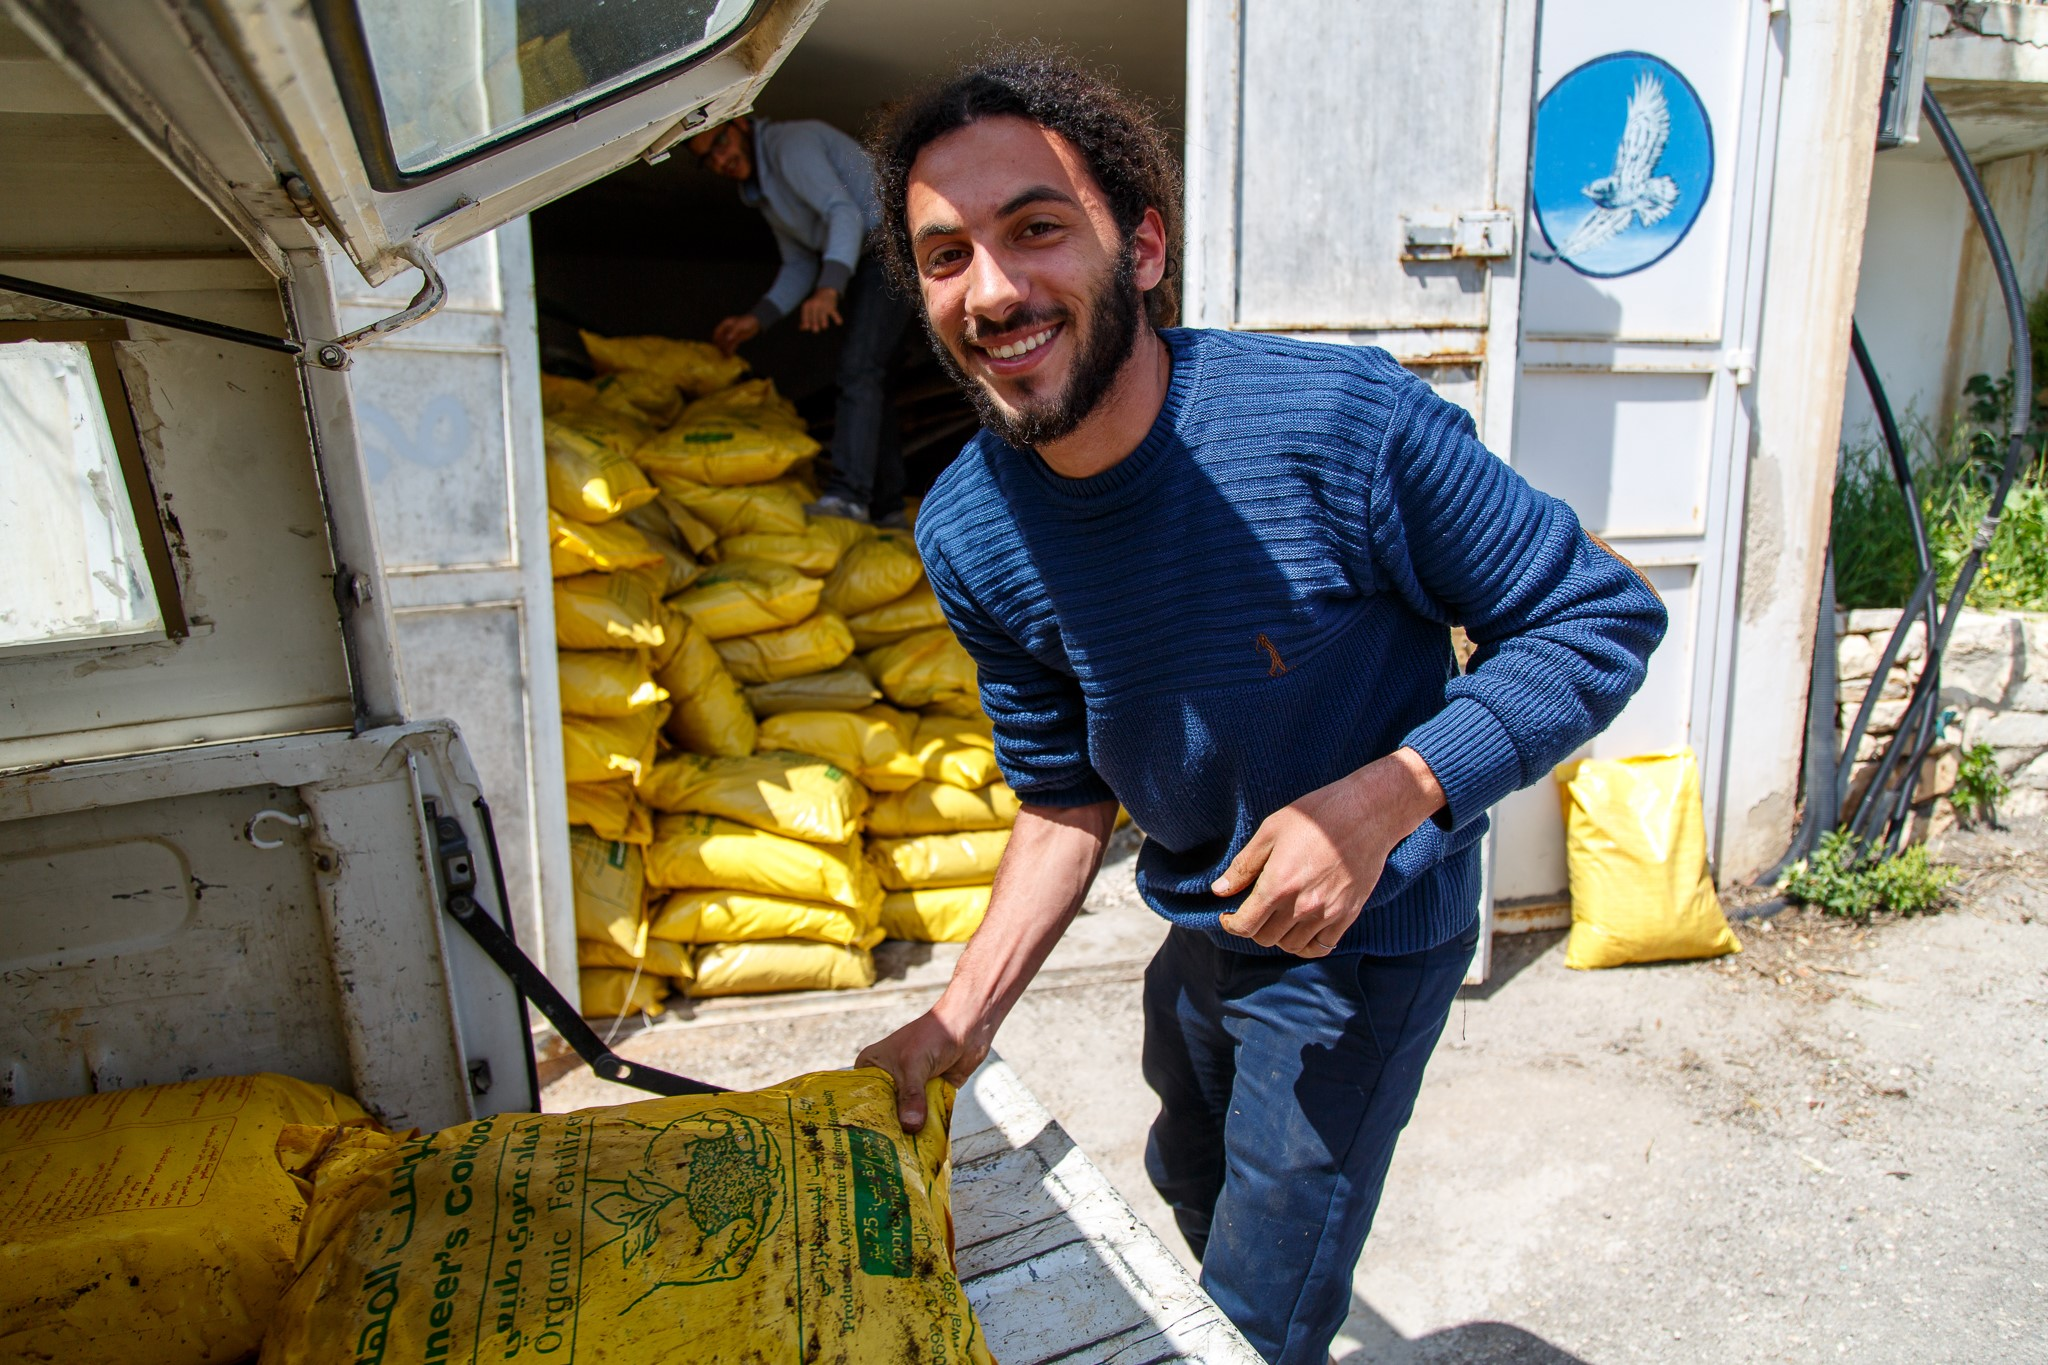 Co-ordinator of the cultural heritage centre at the Museum, Mohammad Najajrah helps to move the compost